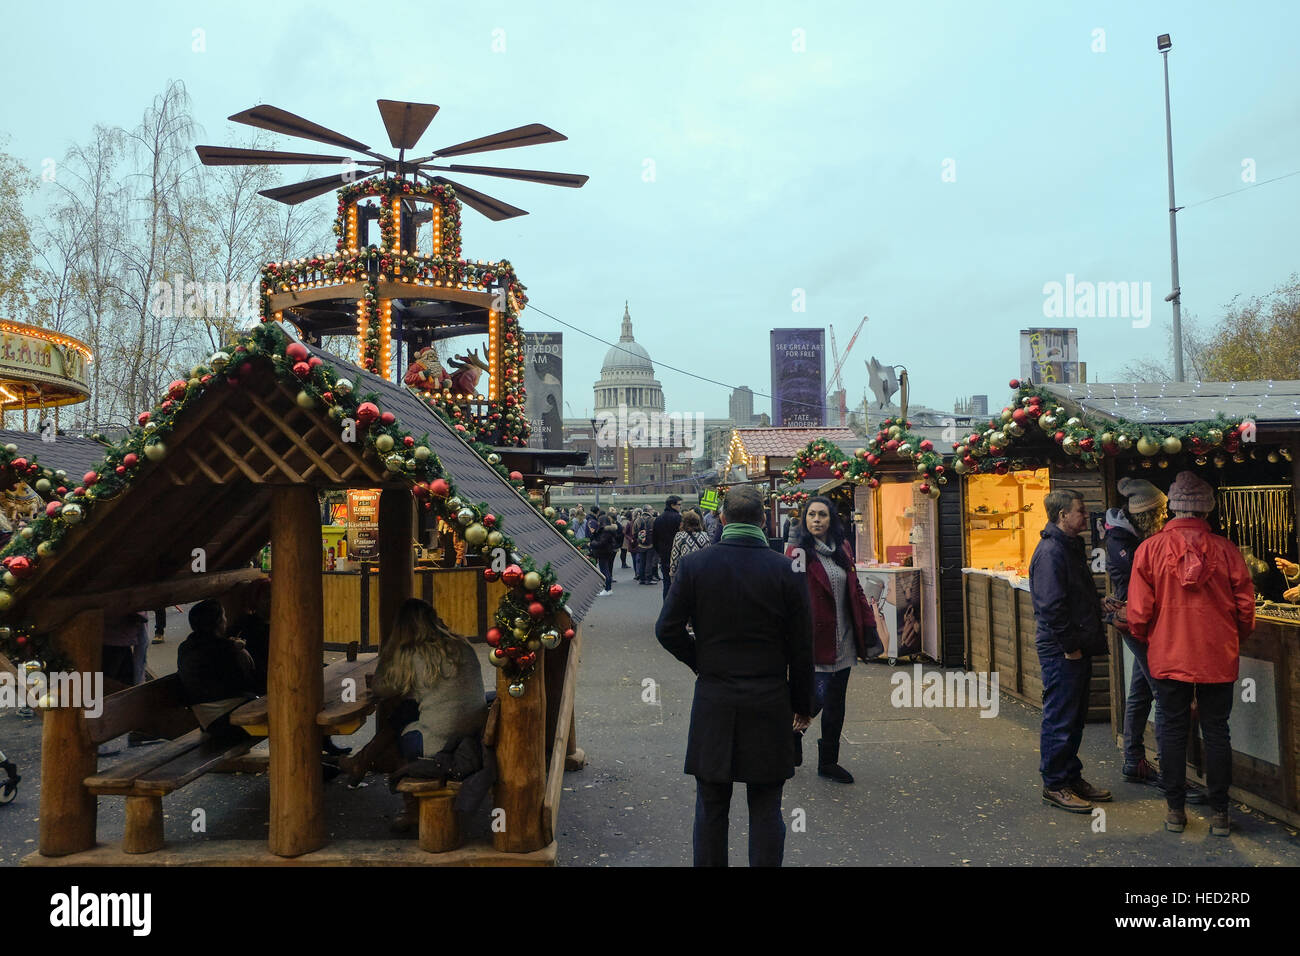 London, UK. 21st December 2016. Visiters to Tate Modern Christmas Market with no obvious sign of hightened security - Stock Image